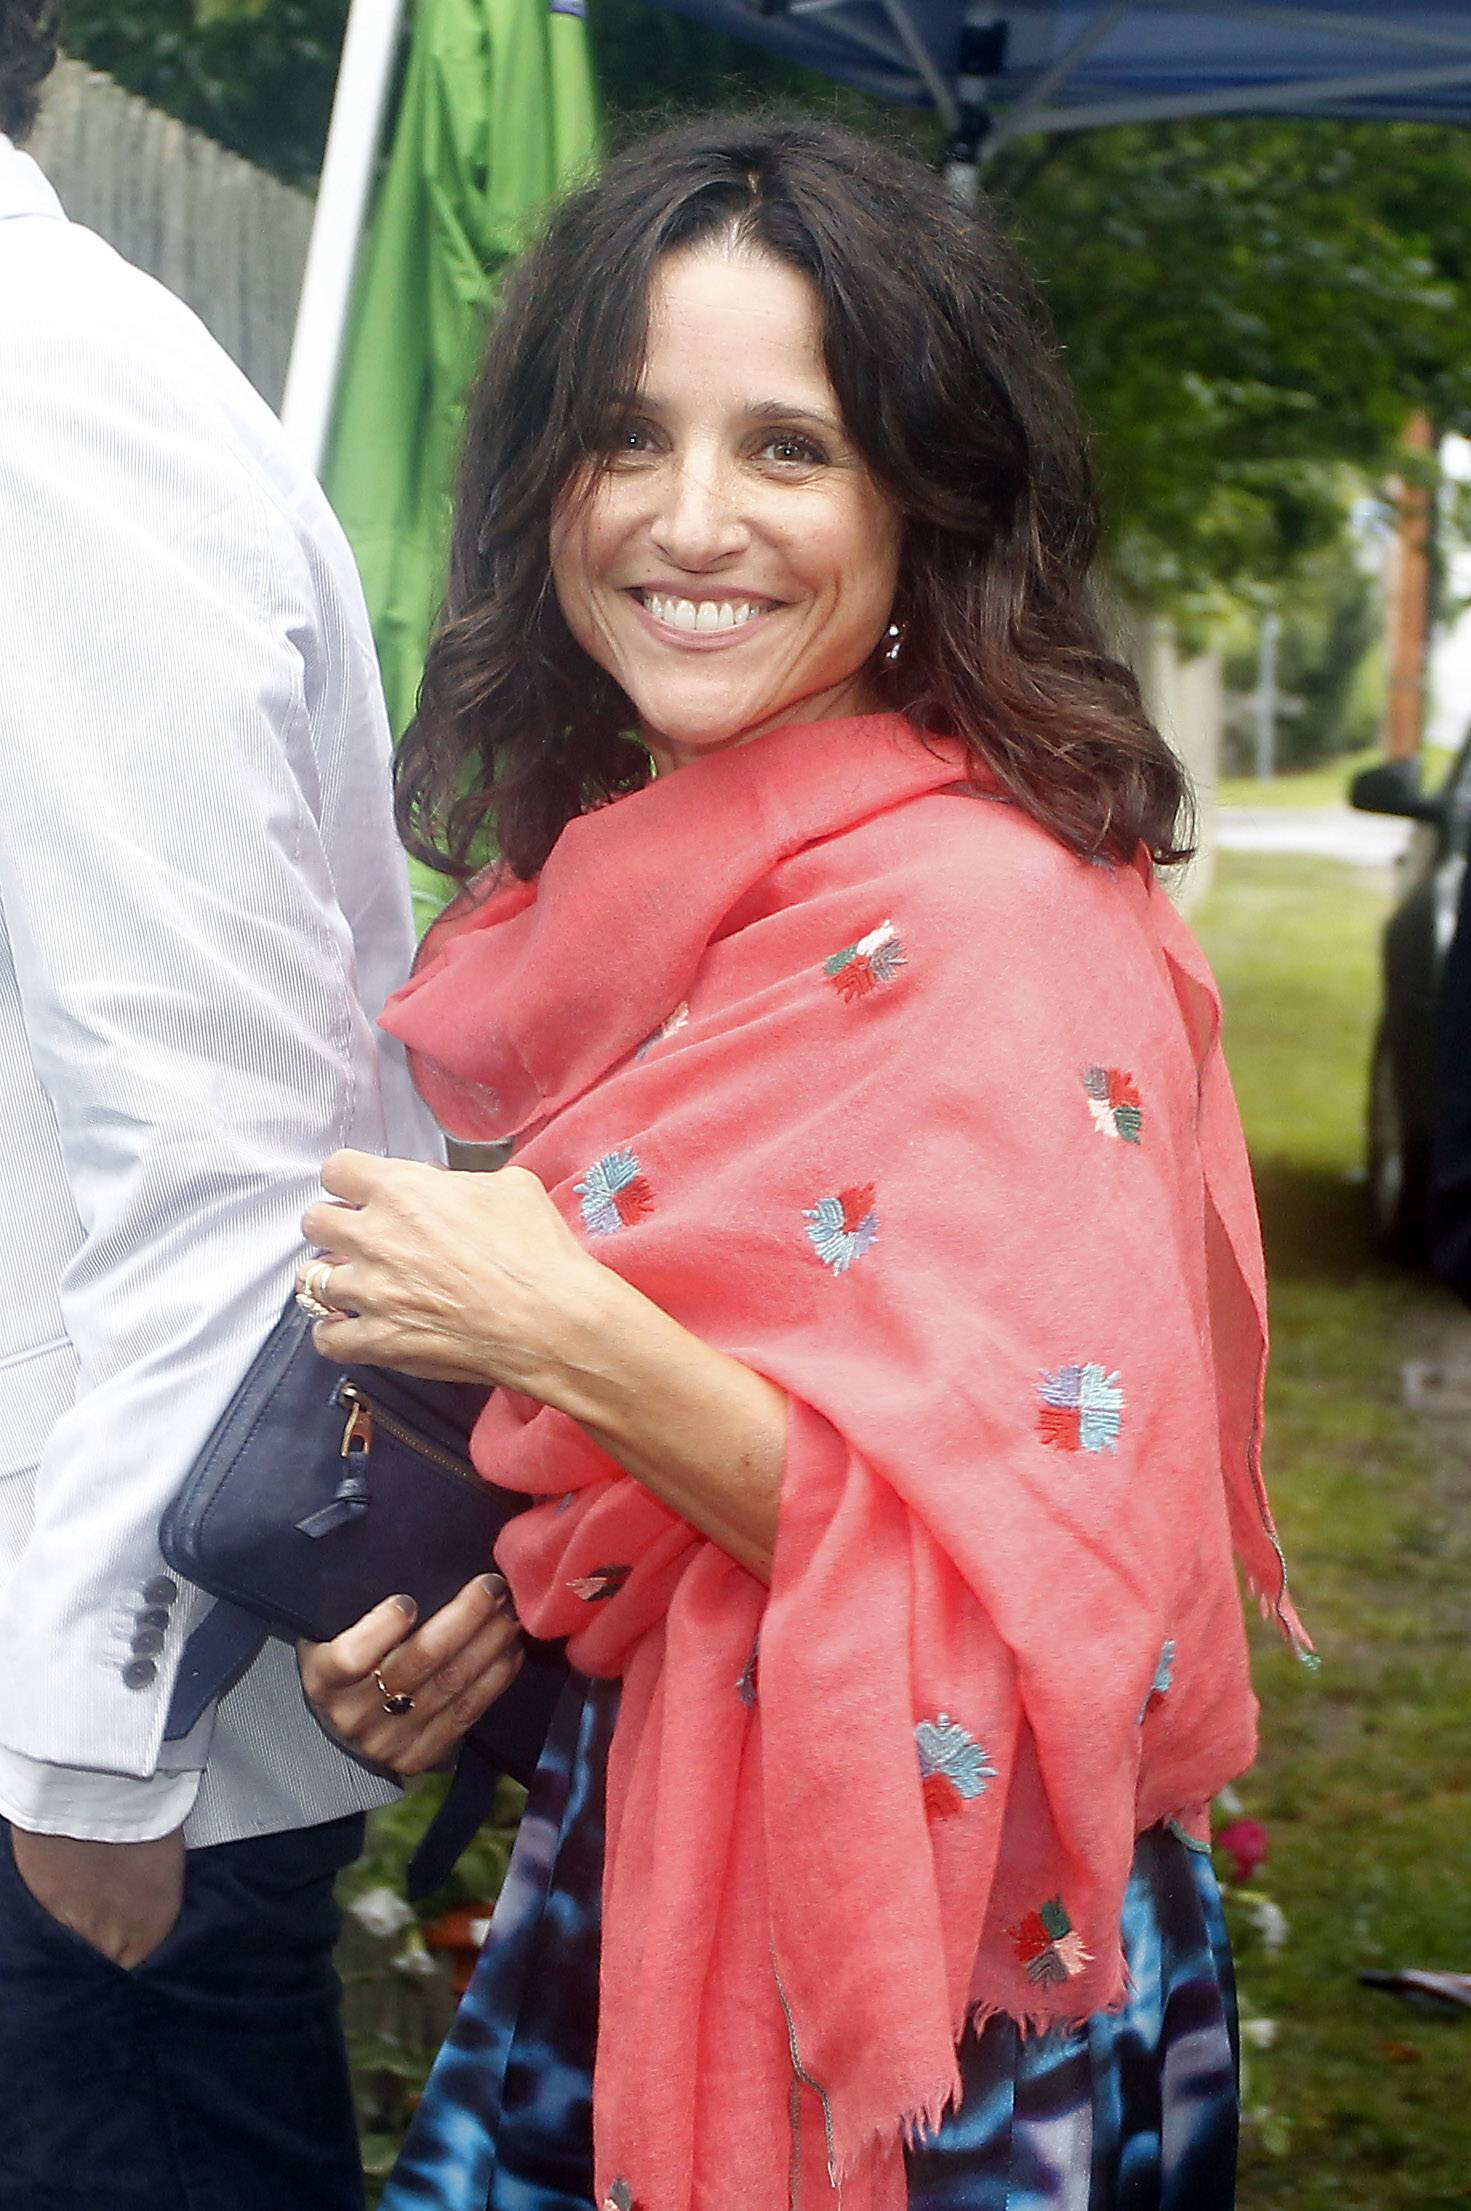 Julia Louis-Dreyfus arrives Saturday at the Kennedy Compound for the wedding of Robert F. Kennedy Jr., and actress Cheryl Hines in Hyannis Port, Mass.